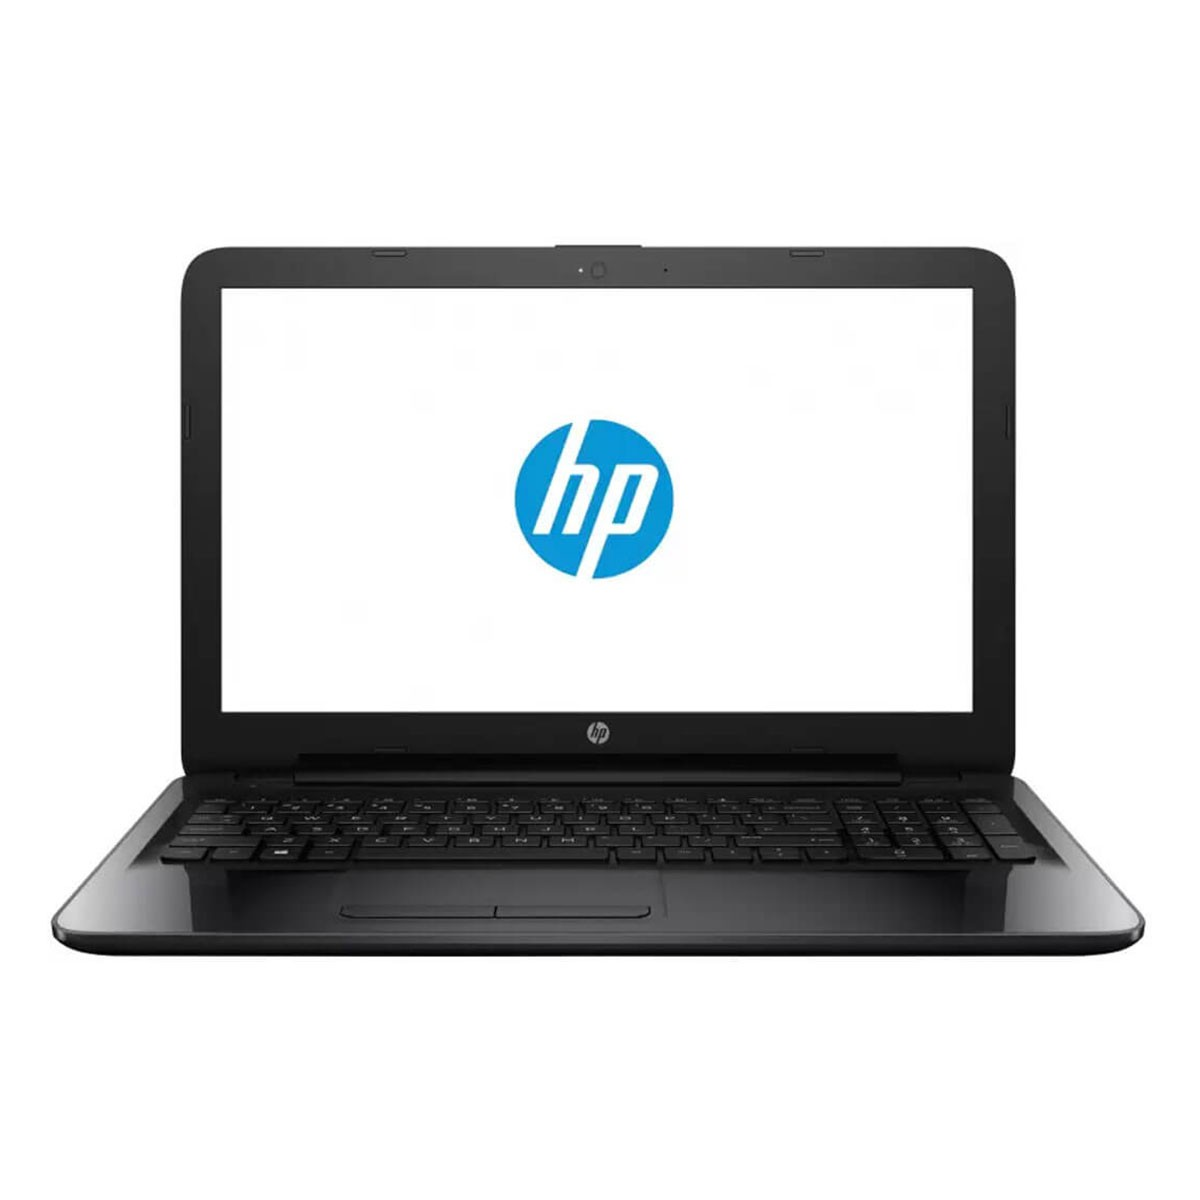 "HP-630 (Core I3 2330M 2.20GHz/4GB/500GB 15.6"") 5CB1442P4J"